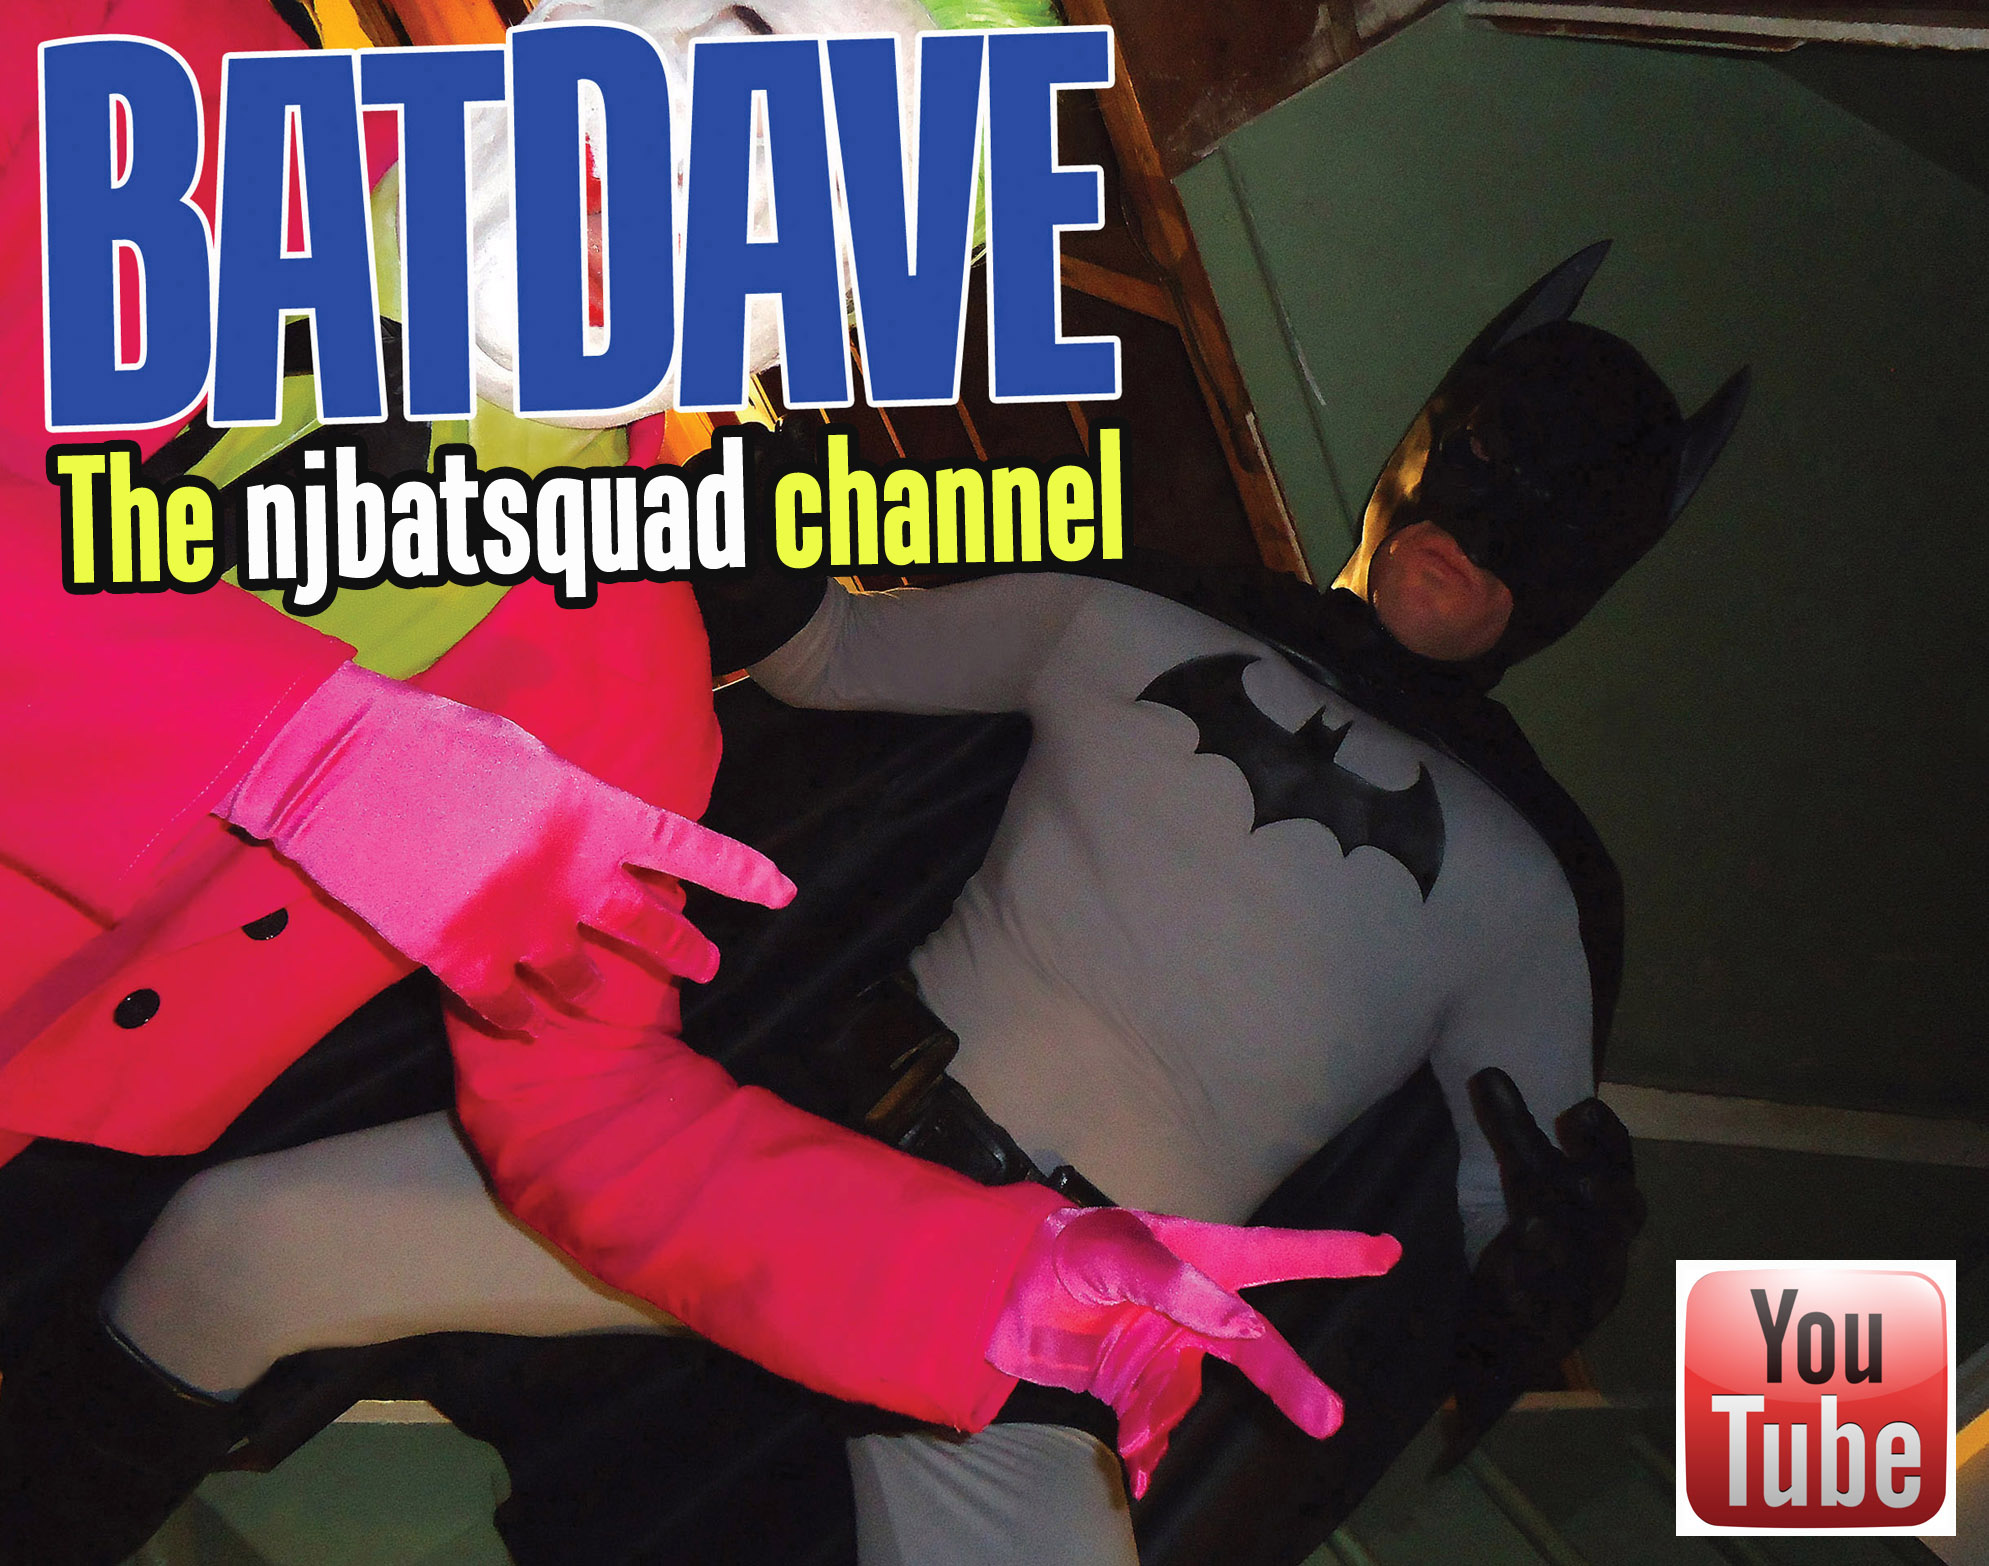 00-BatDave-YouTube-njbatsquad-channel